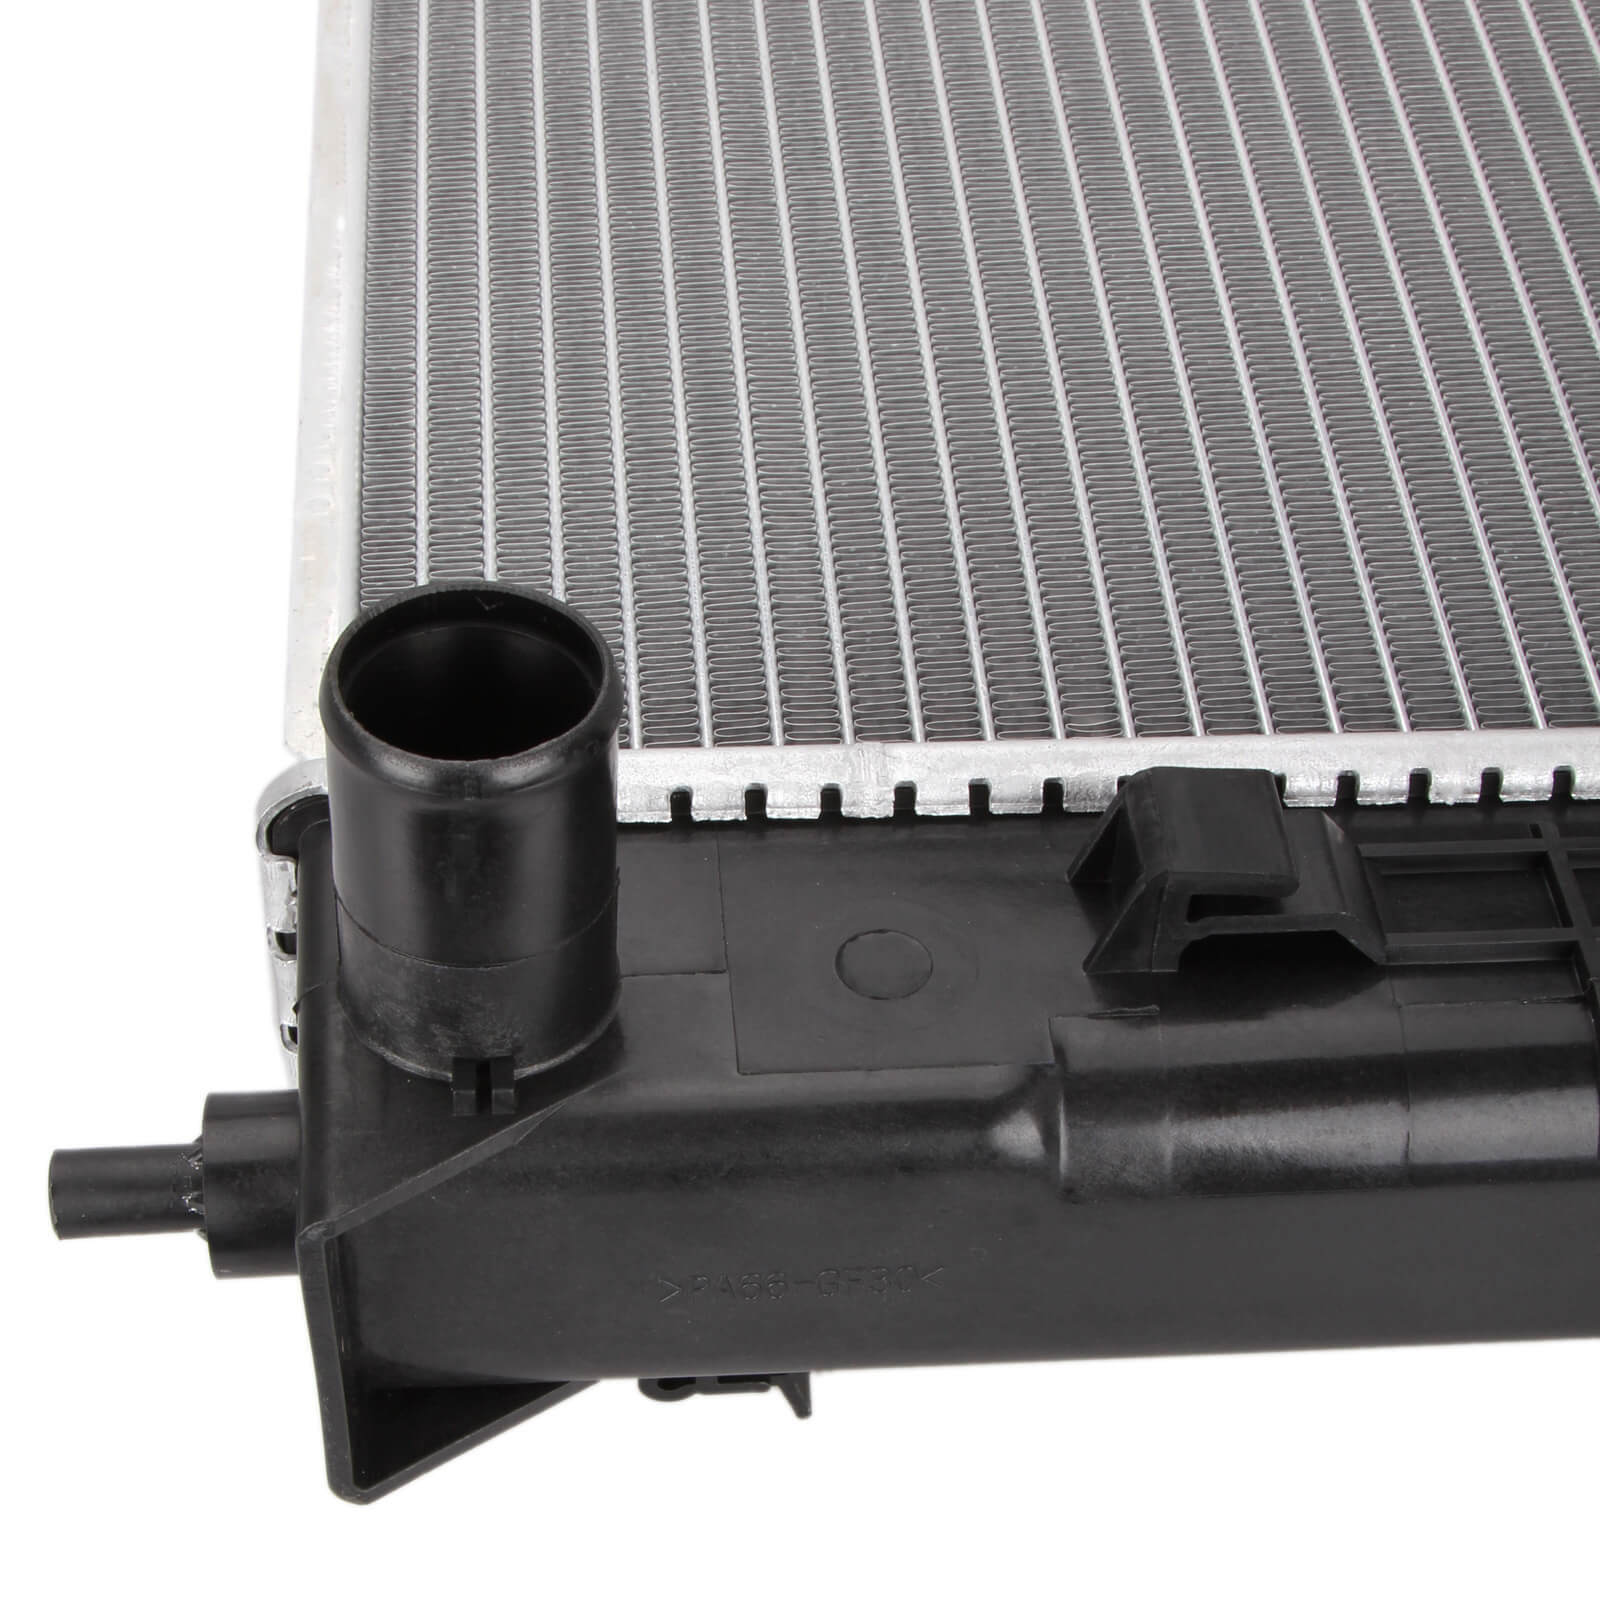 Dromedary-High Quality New 2688 Full Aluminum Radiator For Lexus Rx 330 33-202-v6-4